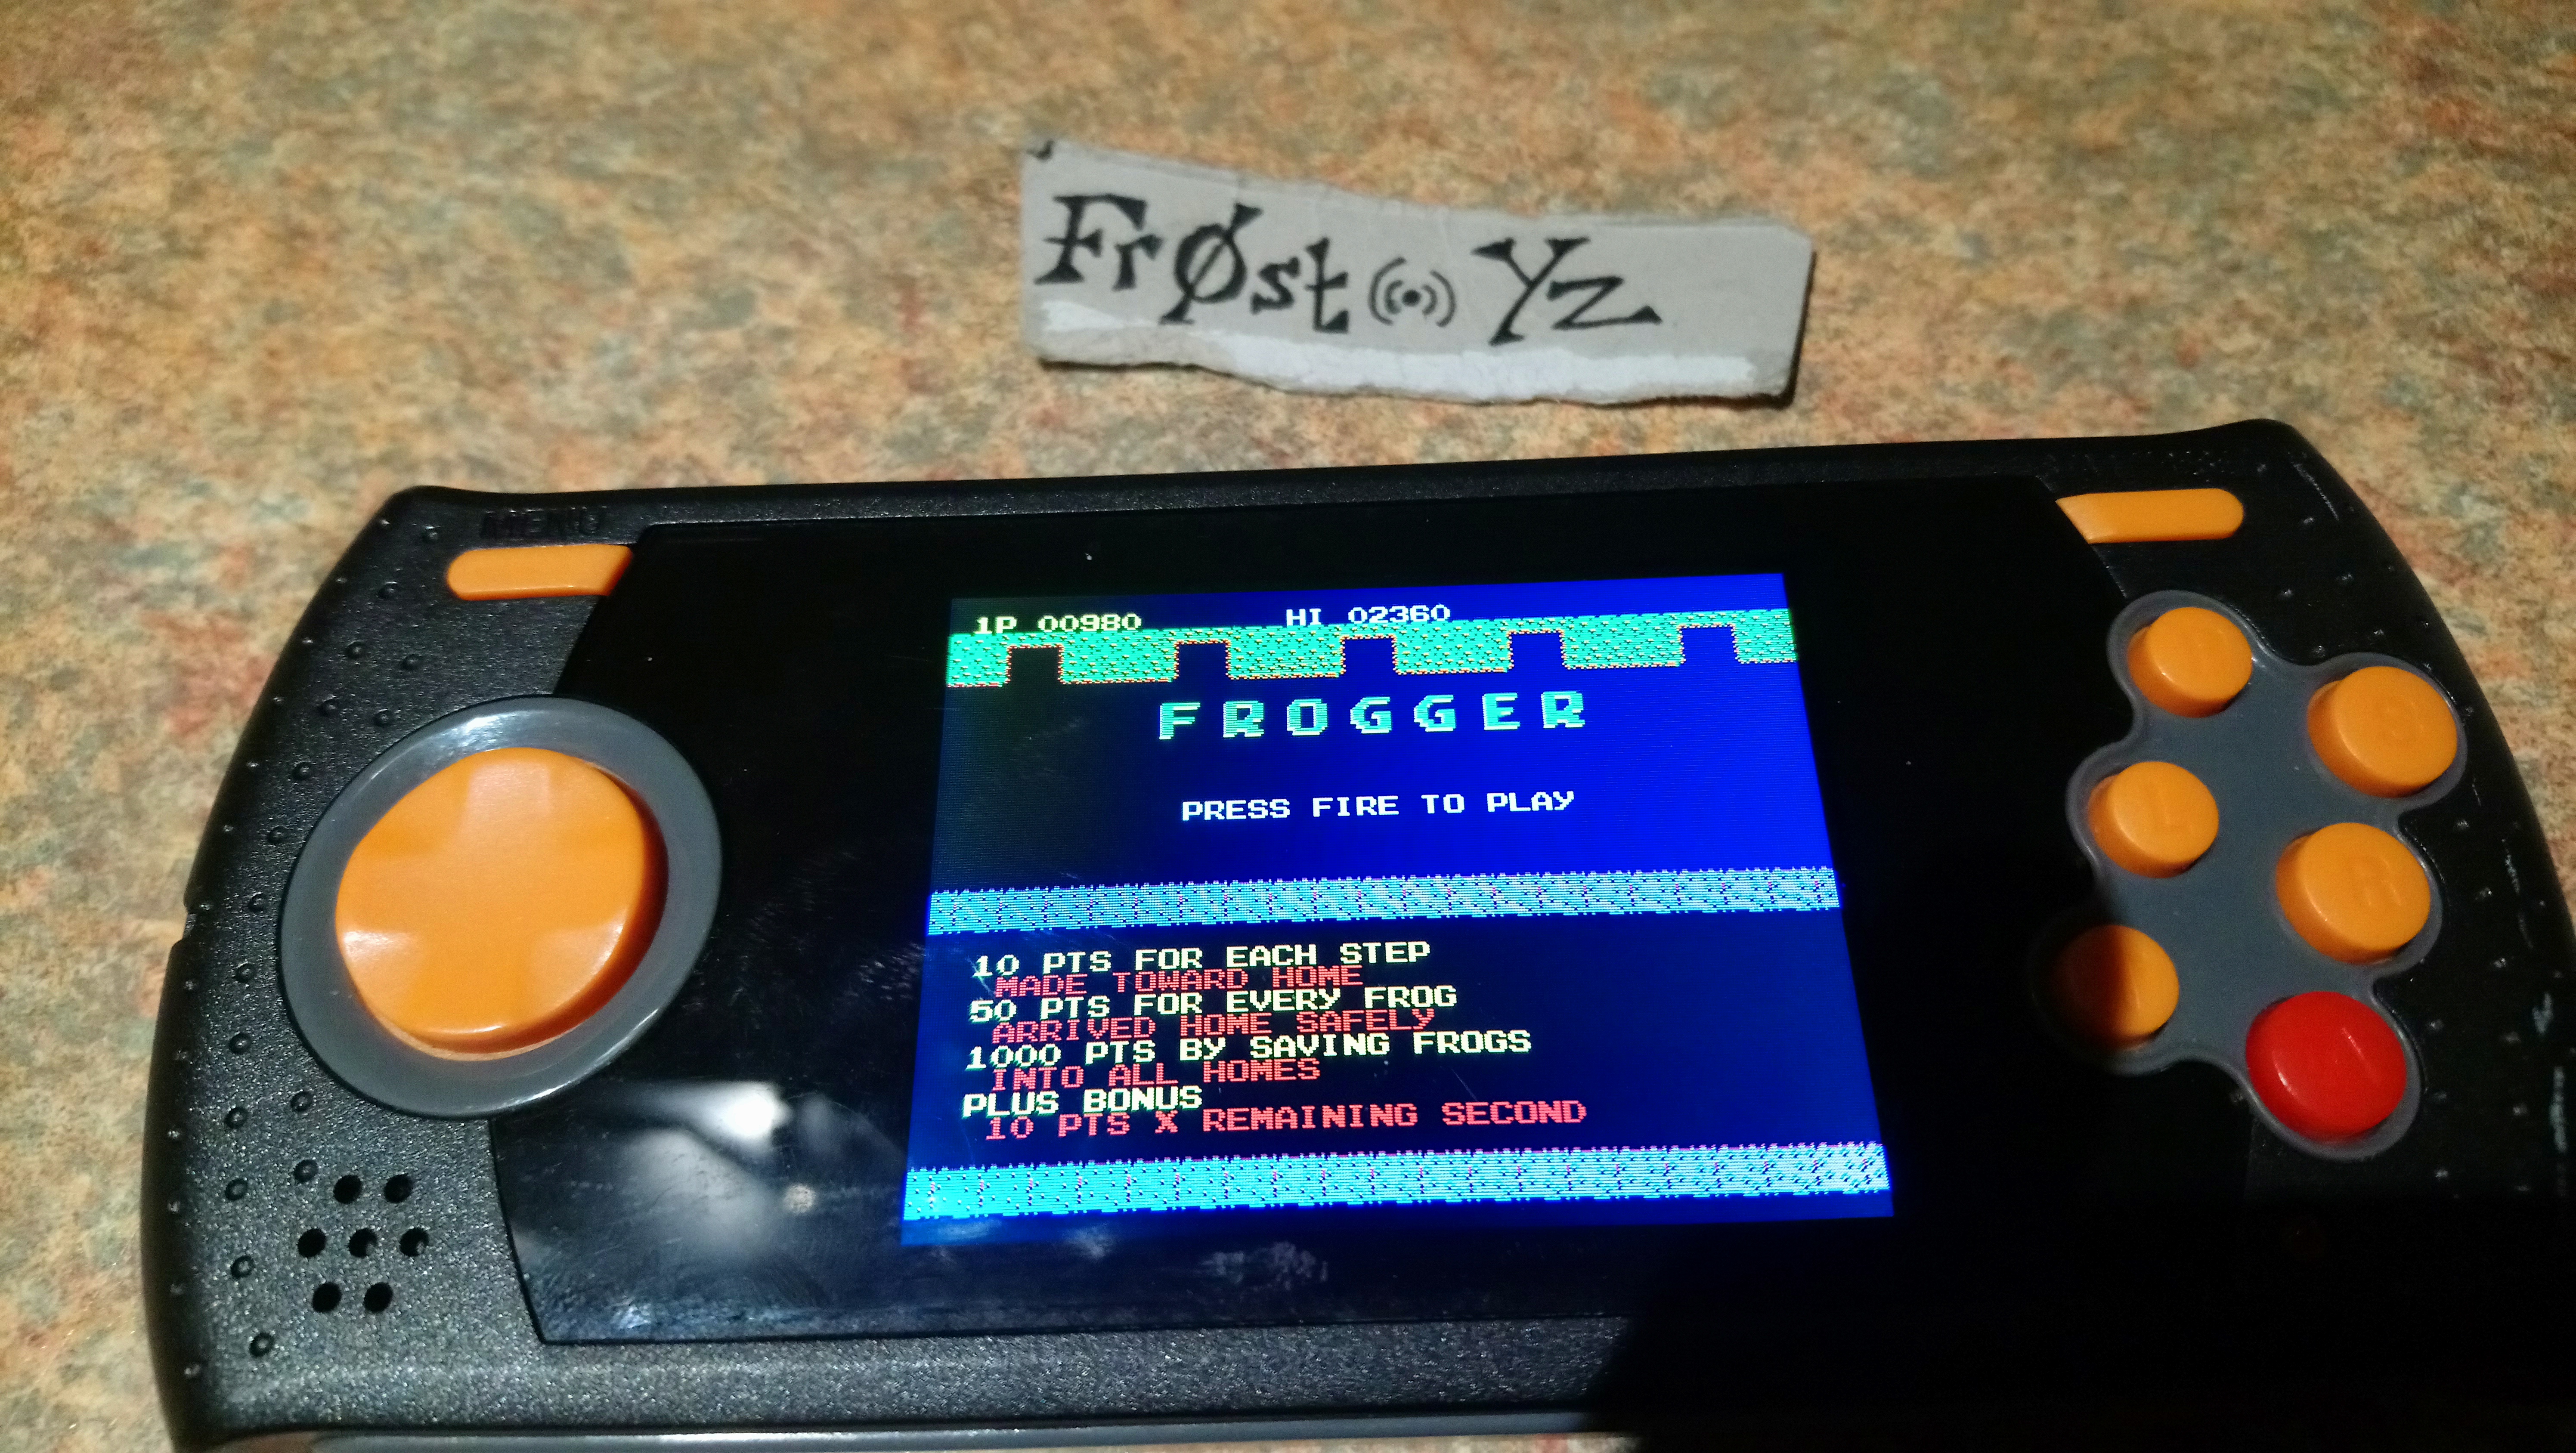 Frogger 2,360 points